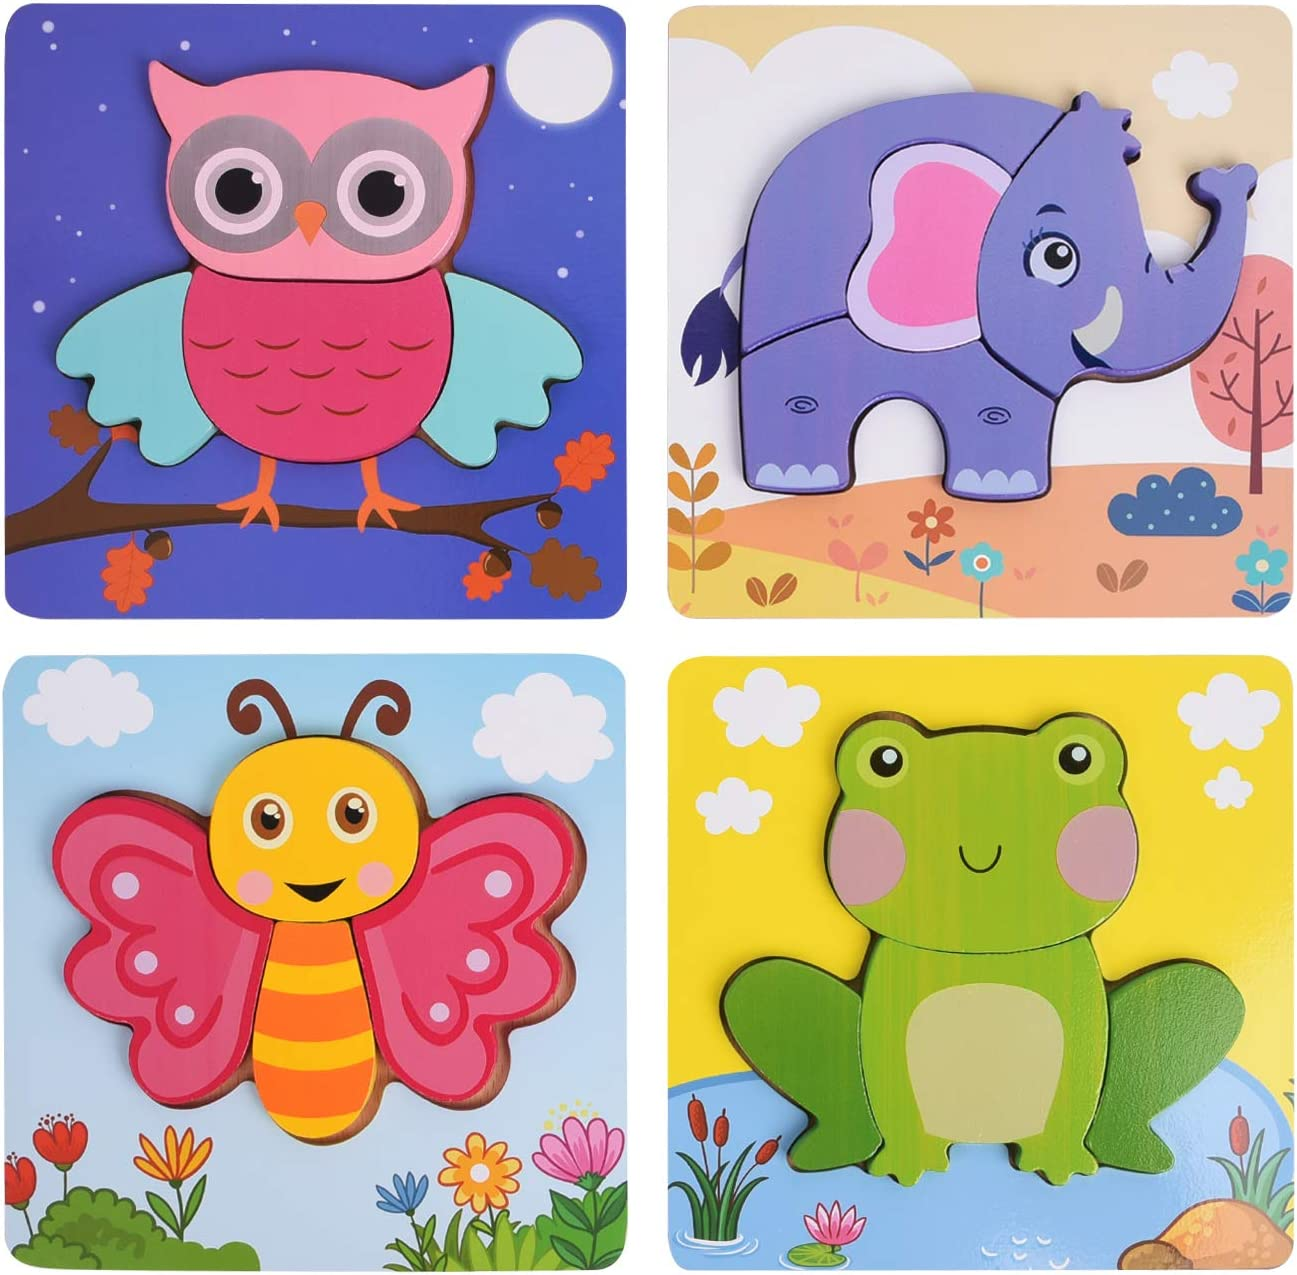 Wooden Jigsaw Puzzles for Toddlers, XREXS Bright Color Animal Shapes Puzzles, Educational Learning Toys Gift for 1 2 3 Years Old Babies Boys Girls 4 Packs